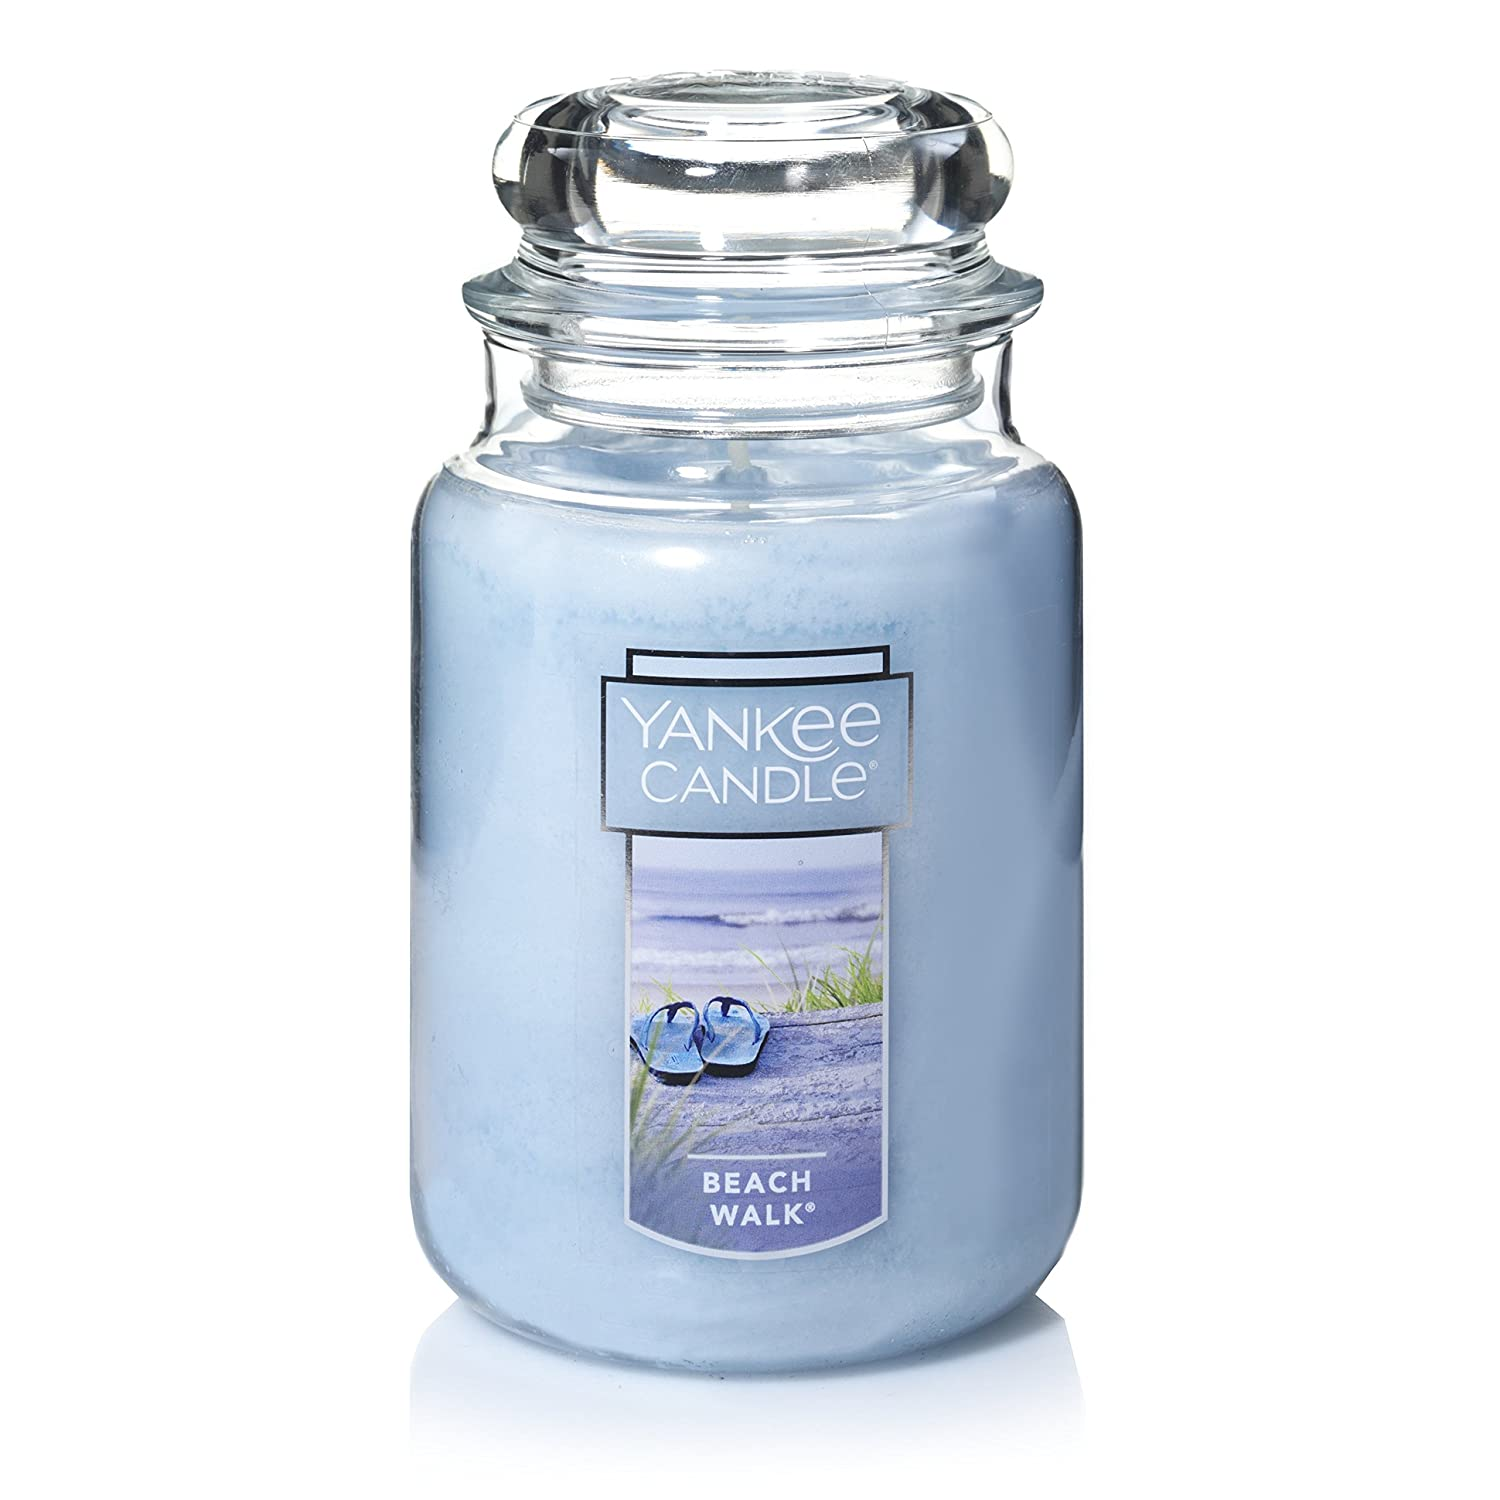 Yankee Candle Large Jar Candle Beach Walk